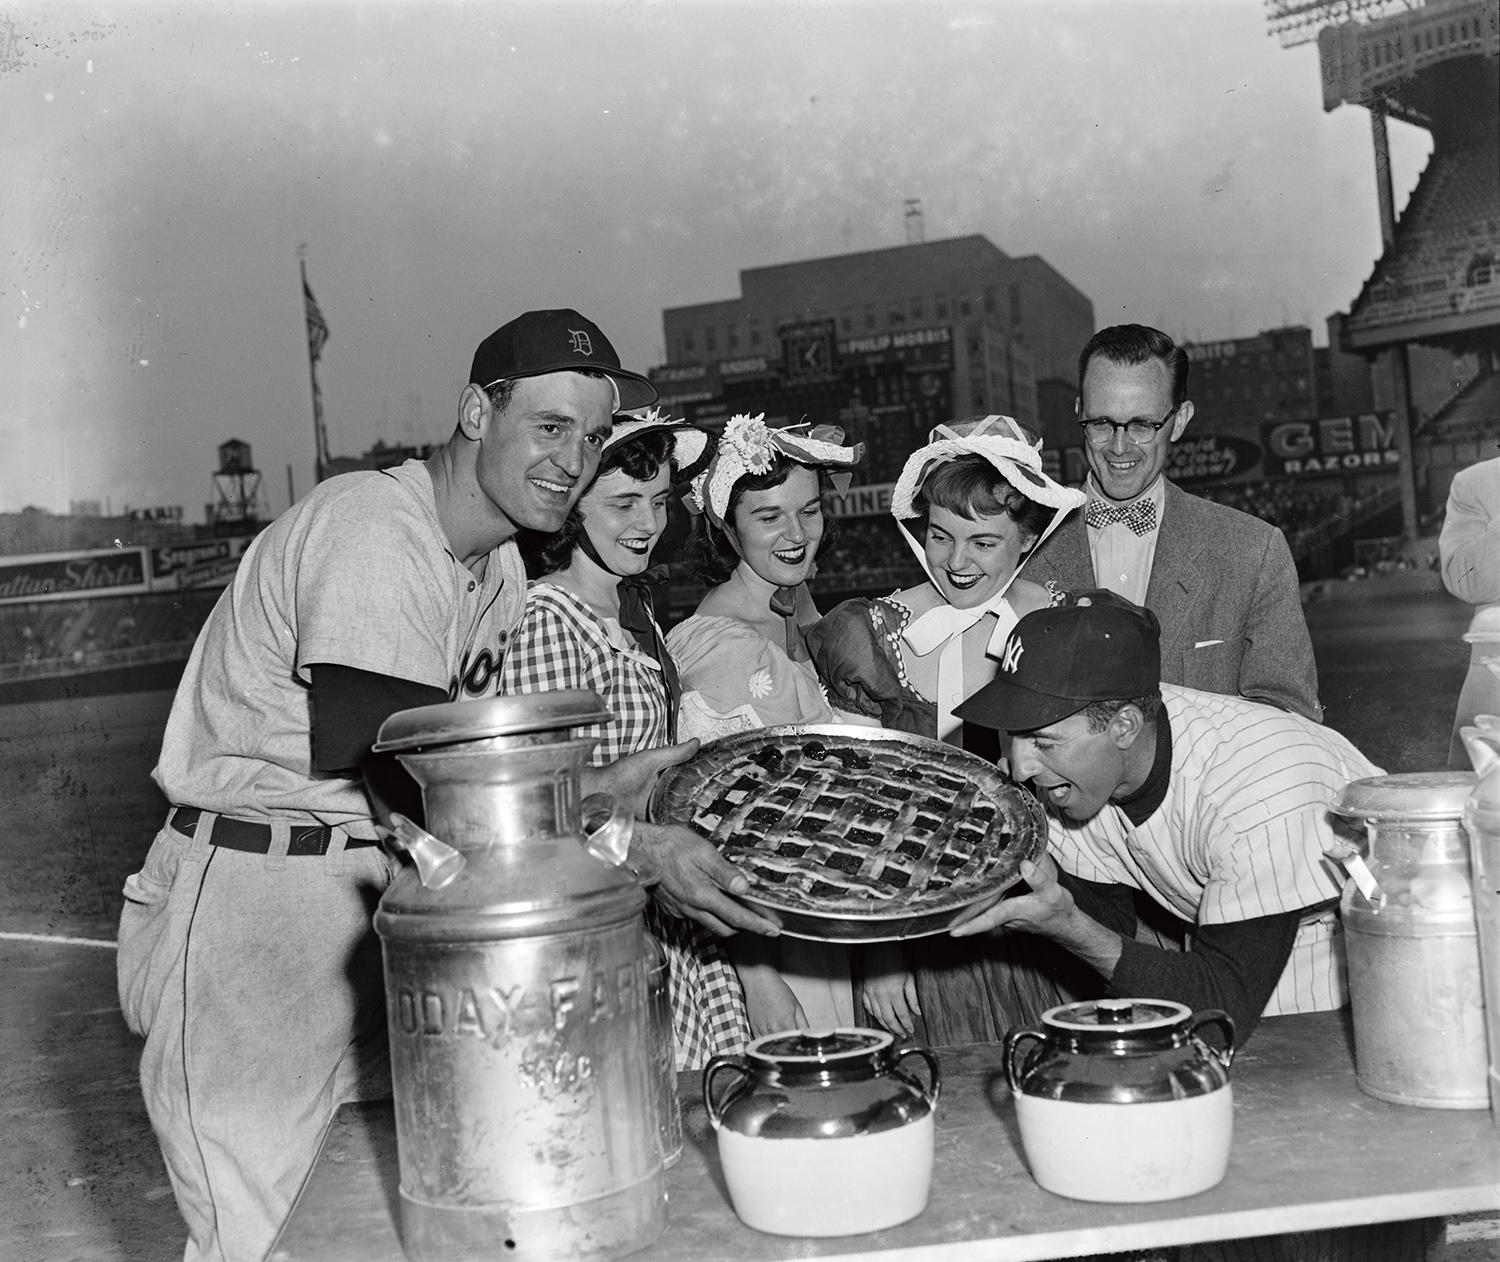 """Future Hall of Famer Phil Rizzuto pretends to take a bite of a big pie while on-field at Yankee Stadium in the 1950s. <a href=""""https://collection.baseballhall.org/islandora/object/islandora%3A630885"""">PASTIME</a> (Osvaldo Salas/National Baseball Hall of Fame and Museum)"""